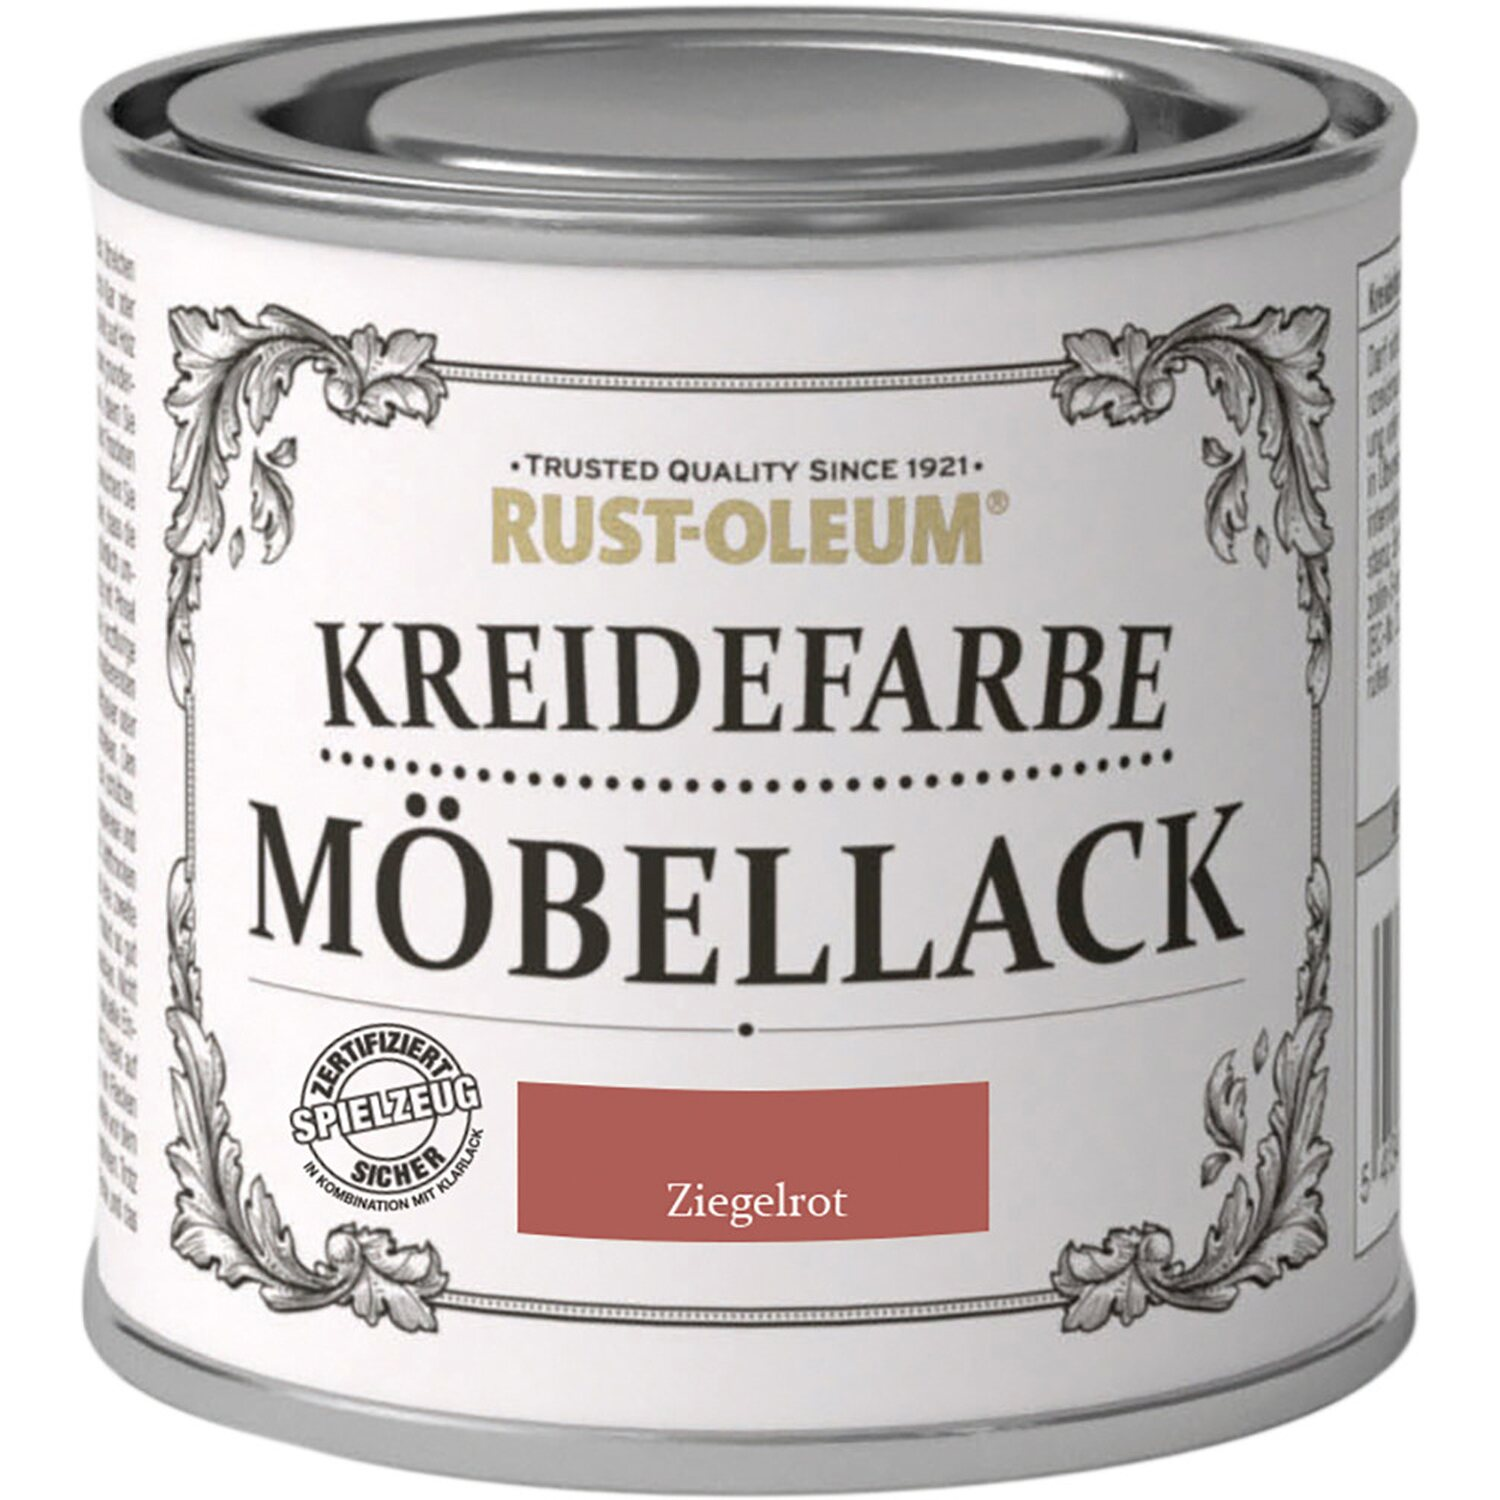 rust oleum m bellack kreidefarbe ziegelrot matt 125 ml. Black Bedroom Furniture Sets. Home Design Ideas